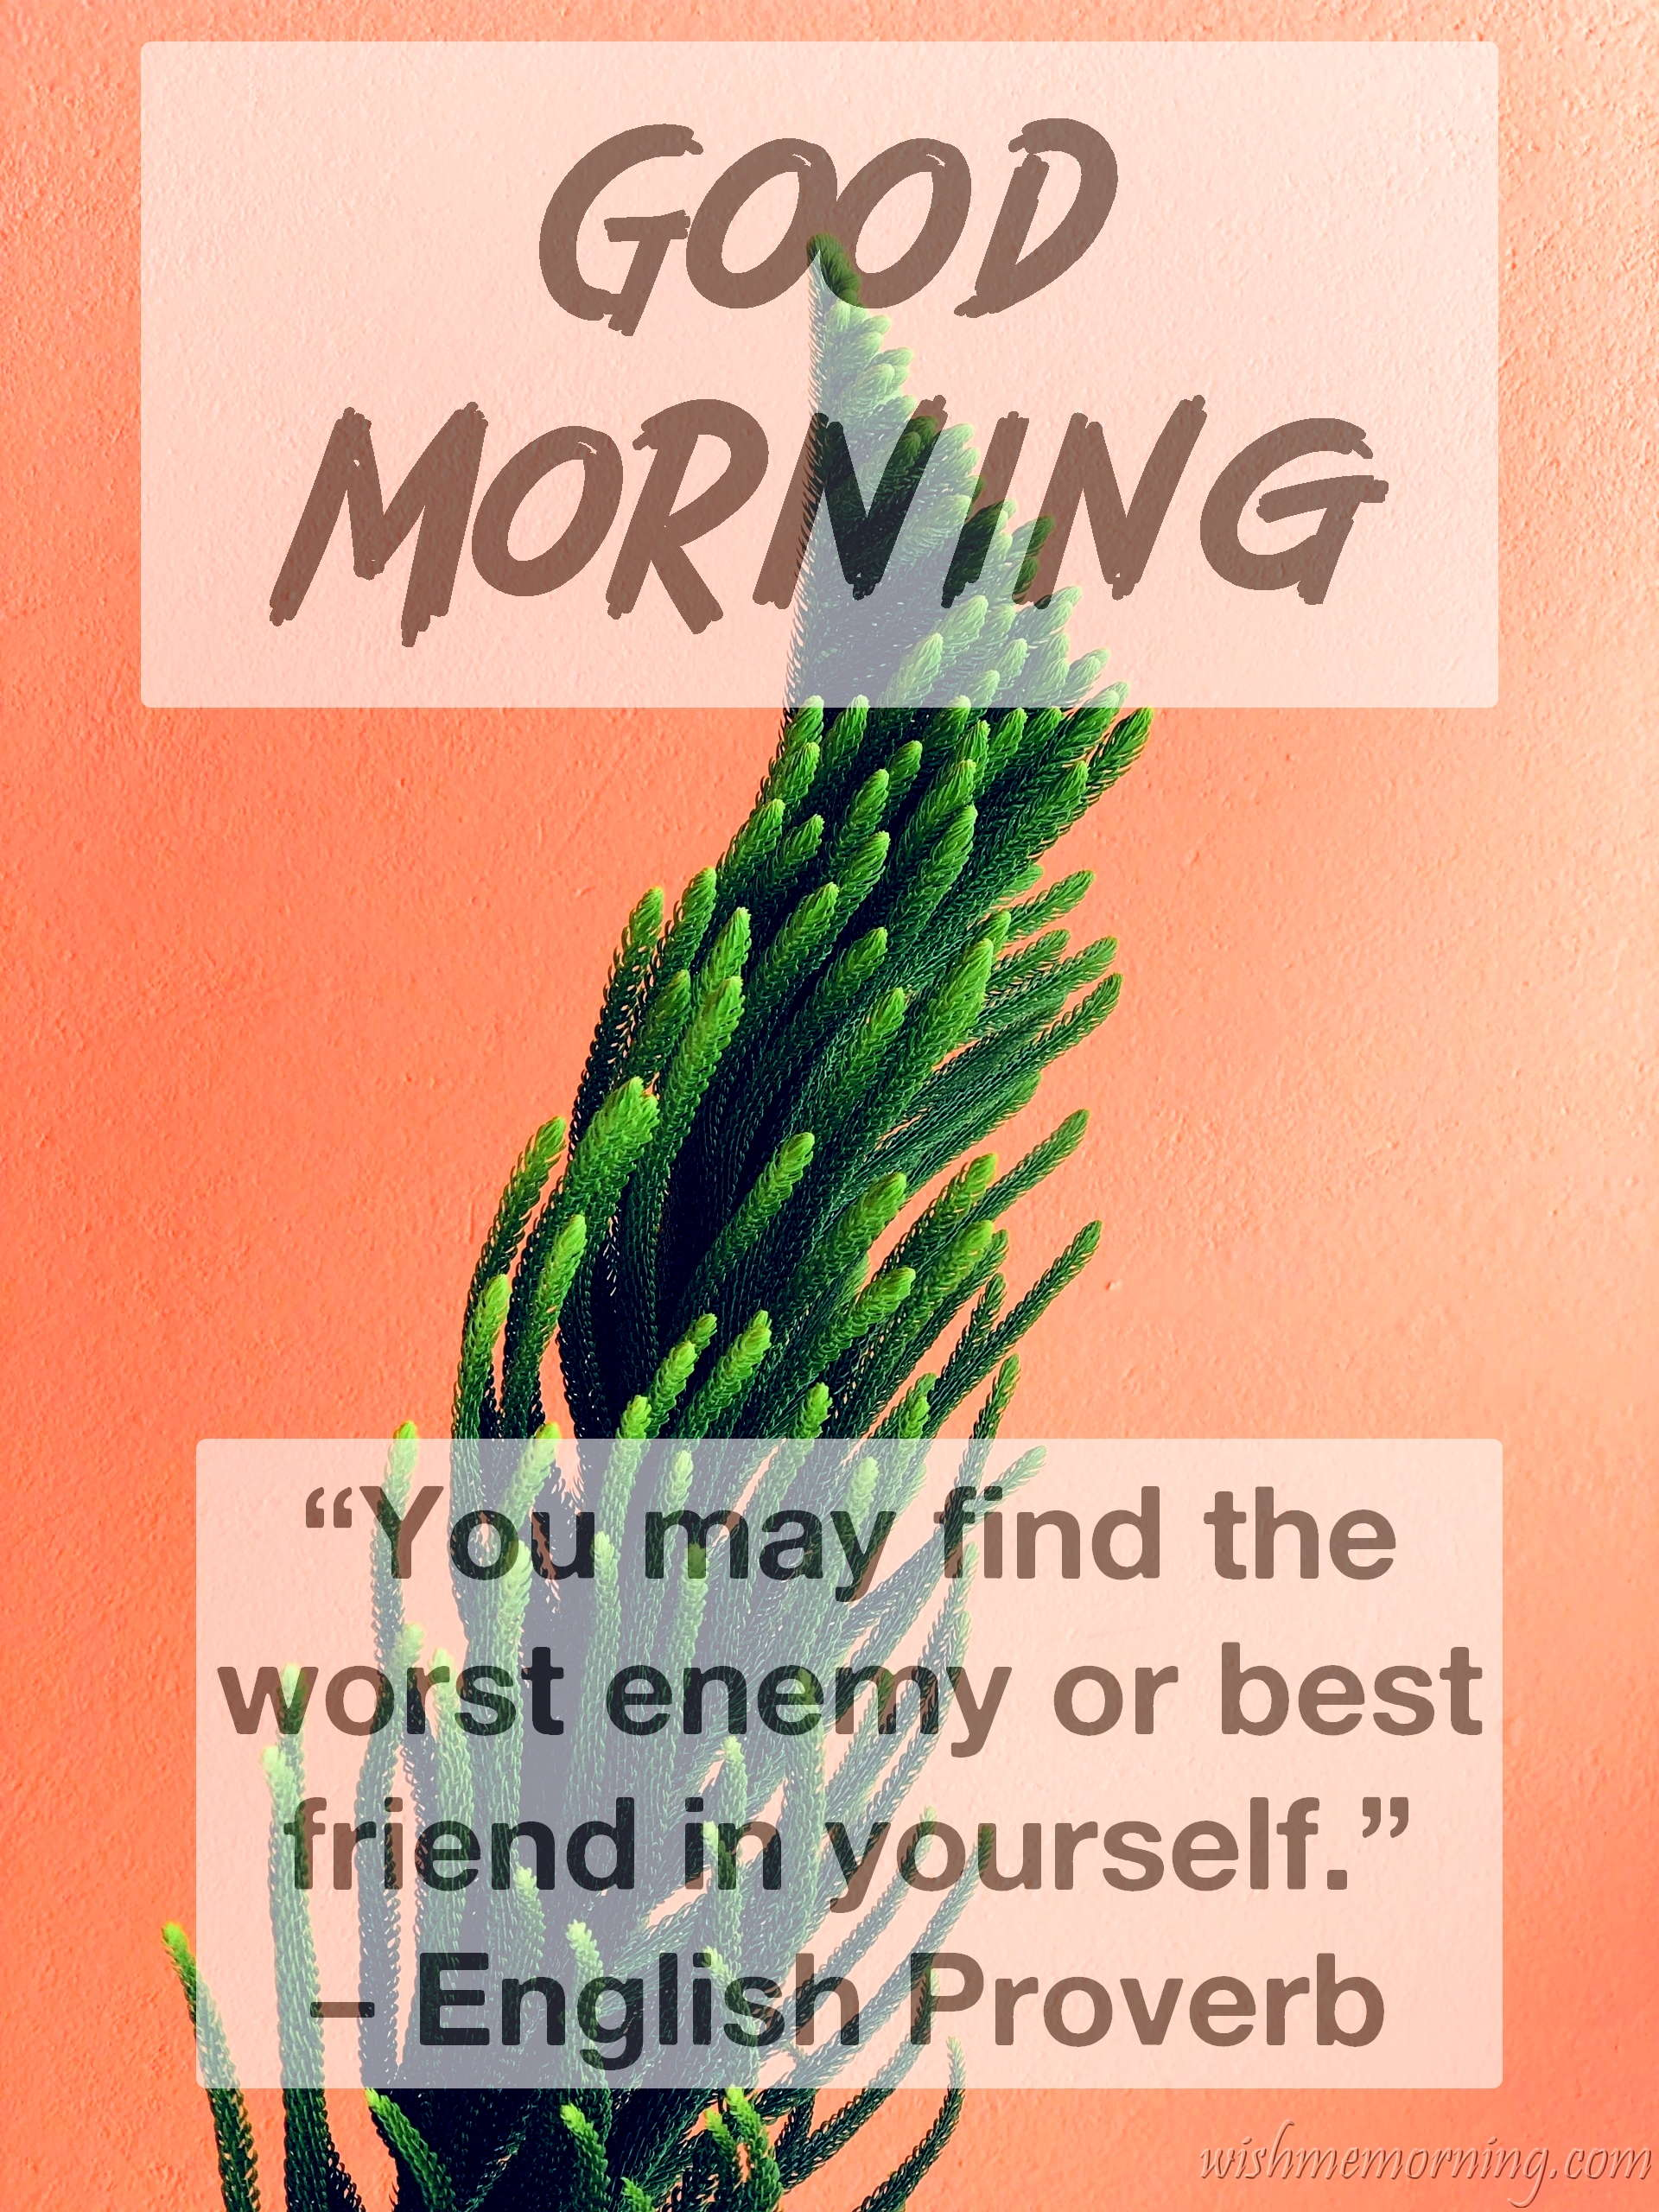 Good Morning Quote English Proverb Plants Background